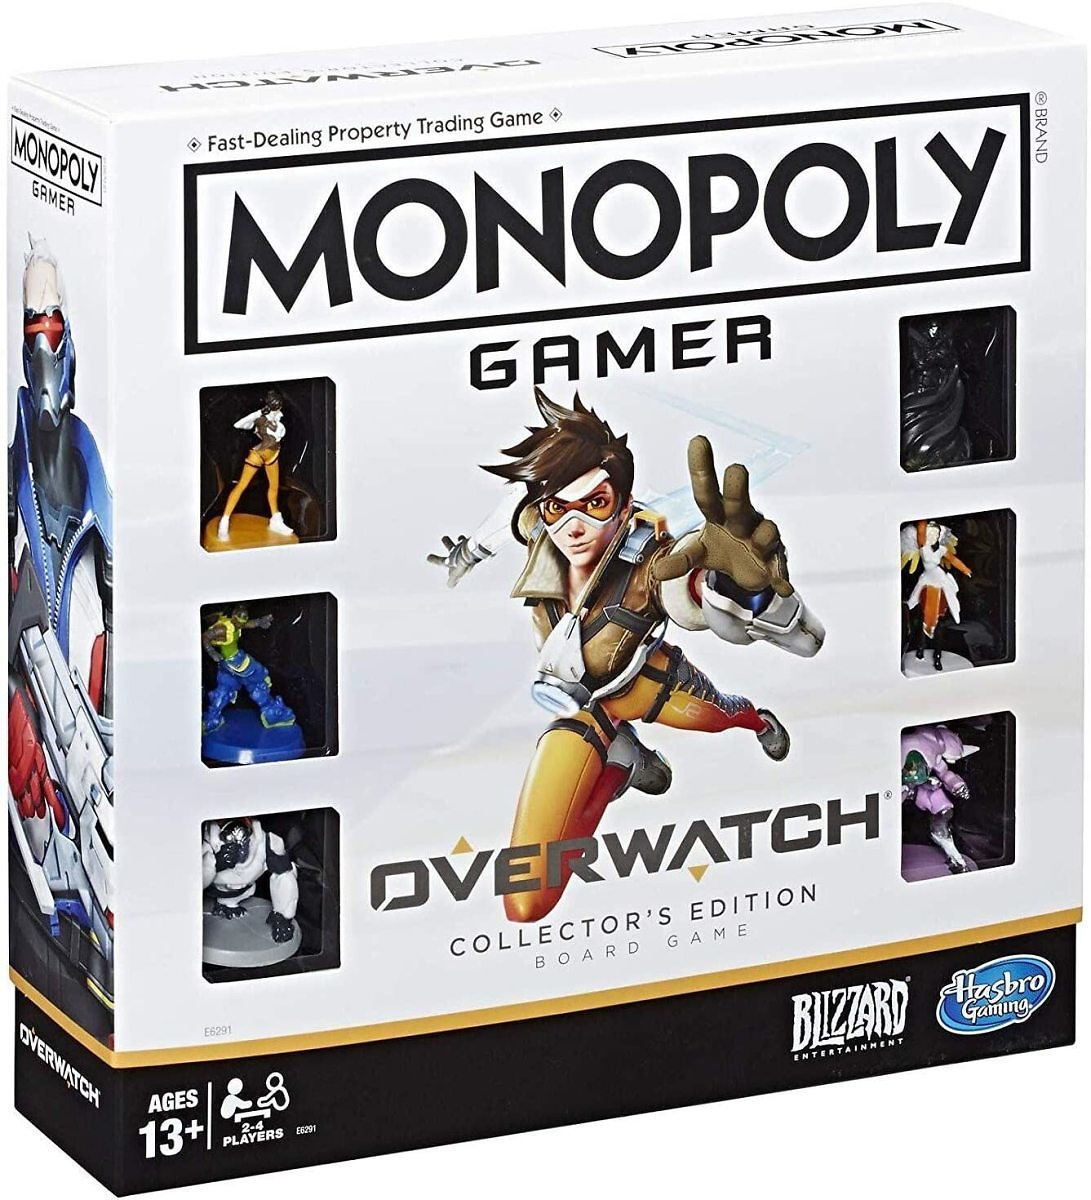 Monopoly Gamer Overwatch Collector's Edition Board Game for Ages 13 and Up Gift for Overwatch Players